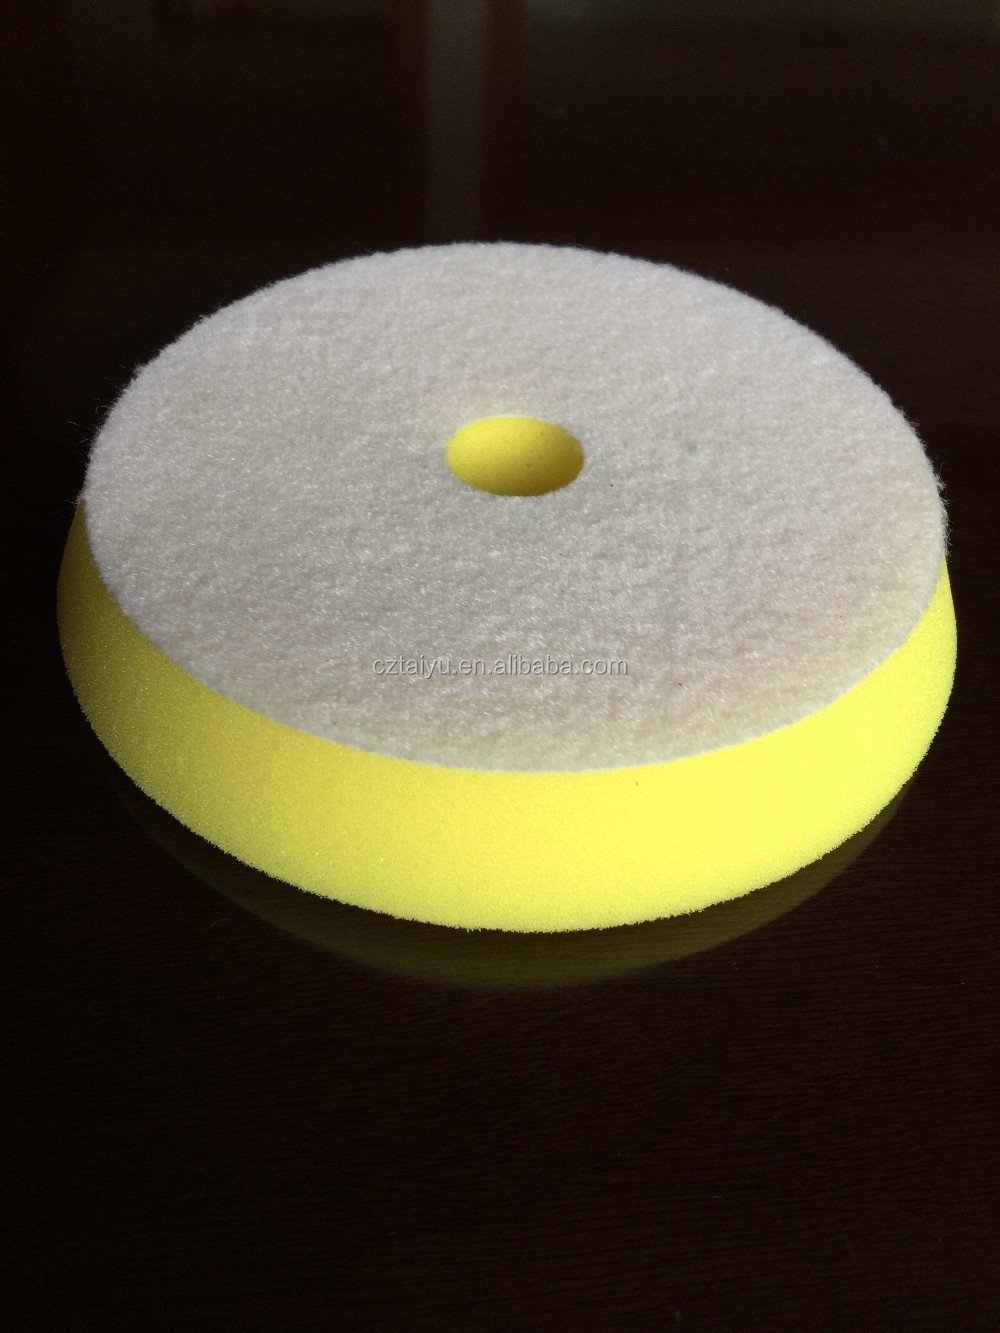 6inch Rupes Type Foam Buffing Pad Polishing Pad with center hole